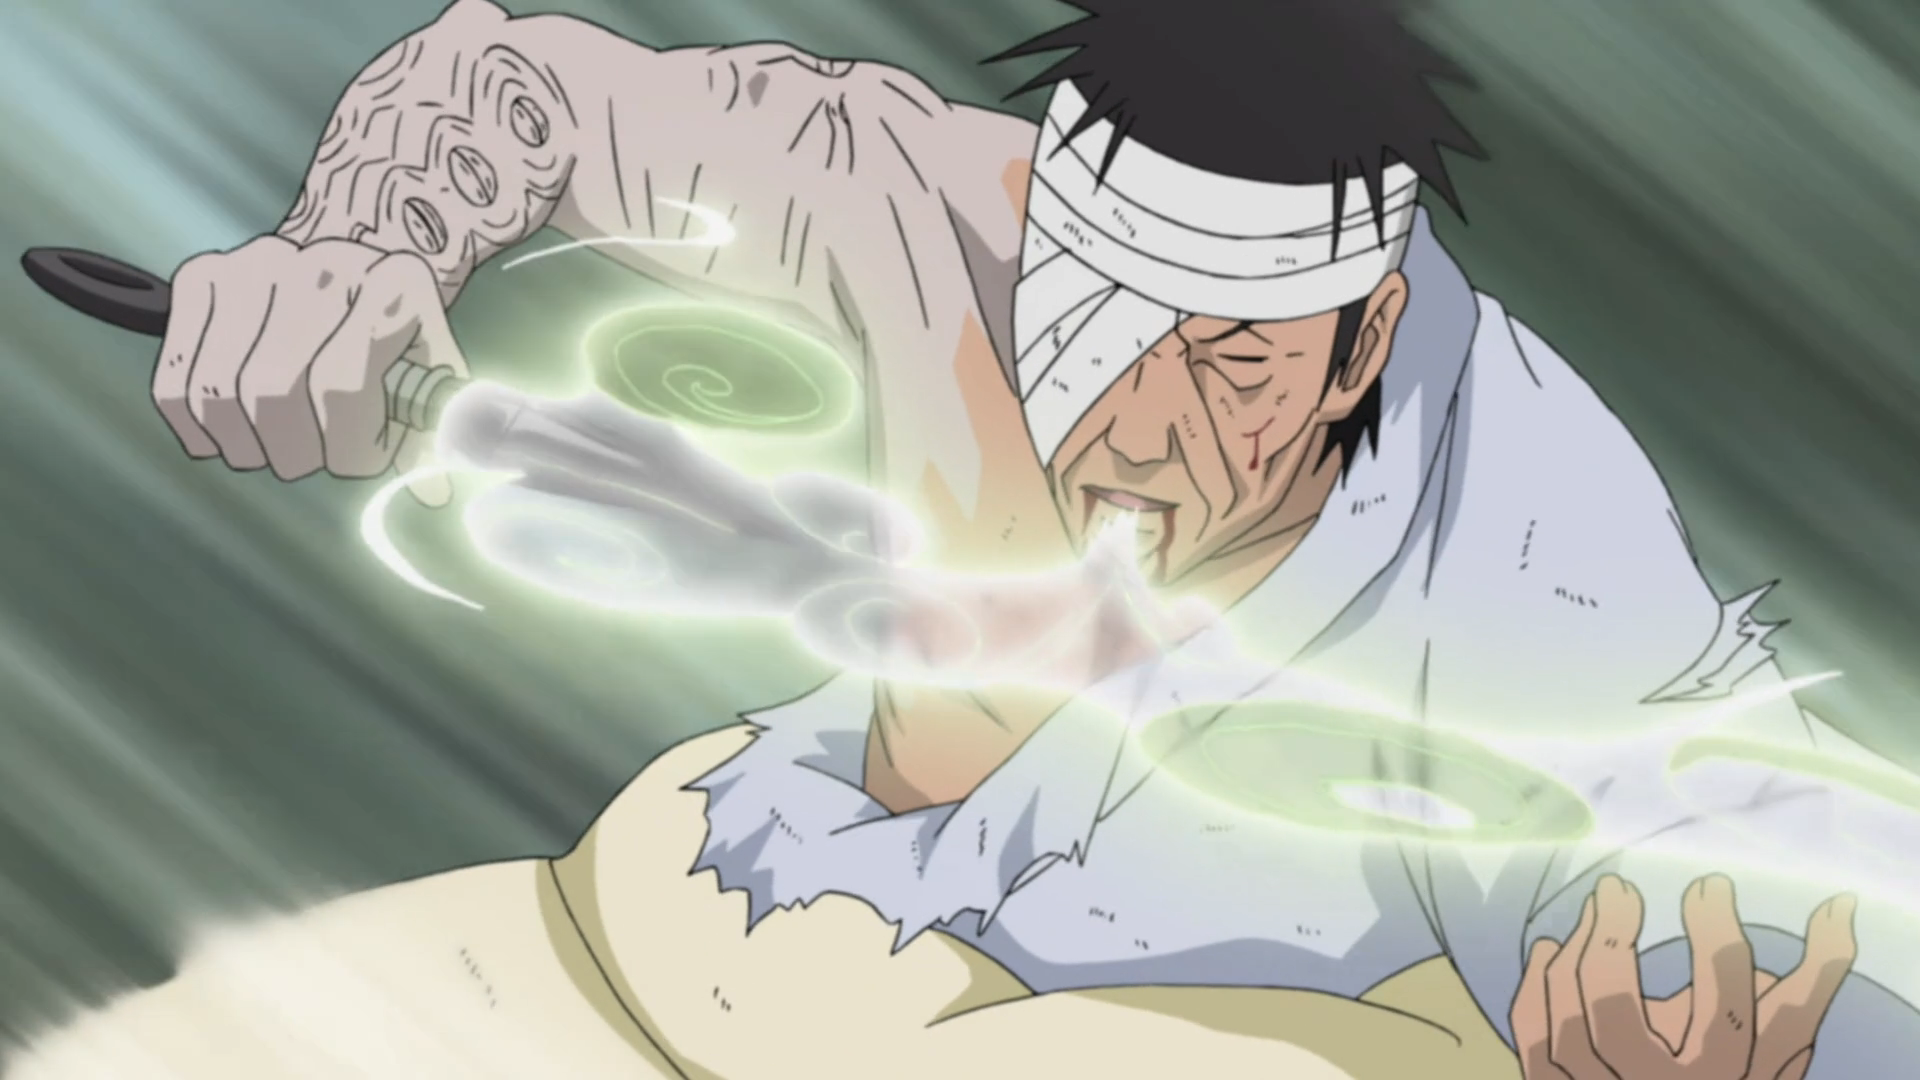 Danzō Shimura | Narutopedia | FANDOM powered by Wikia